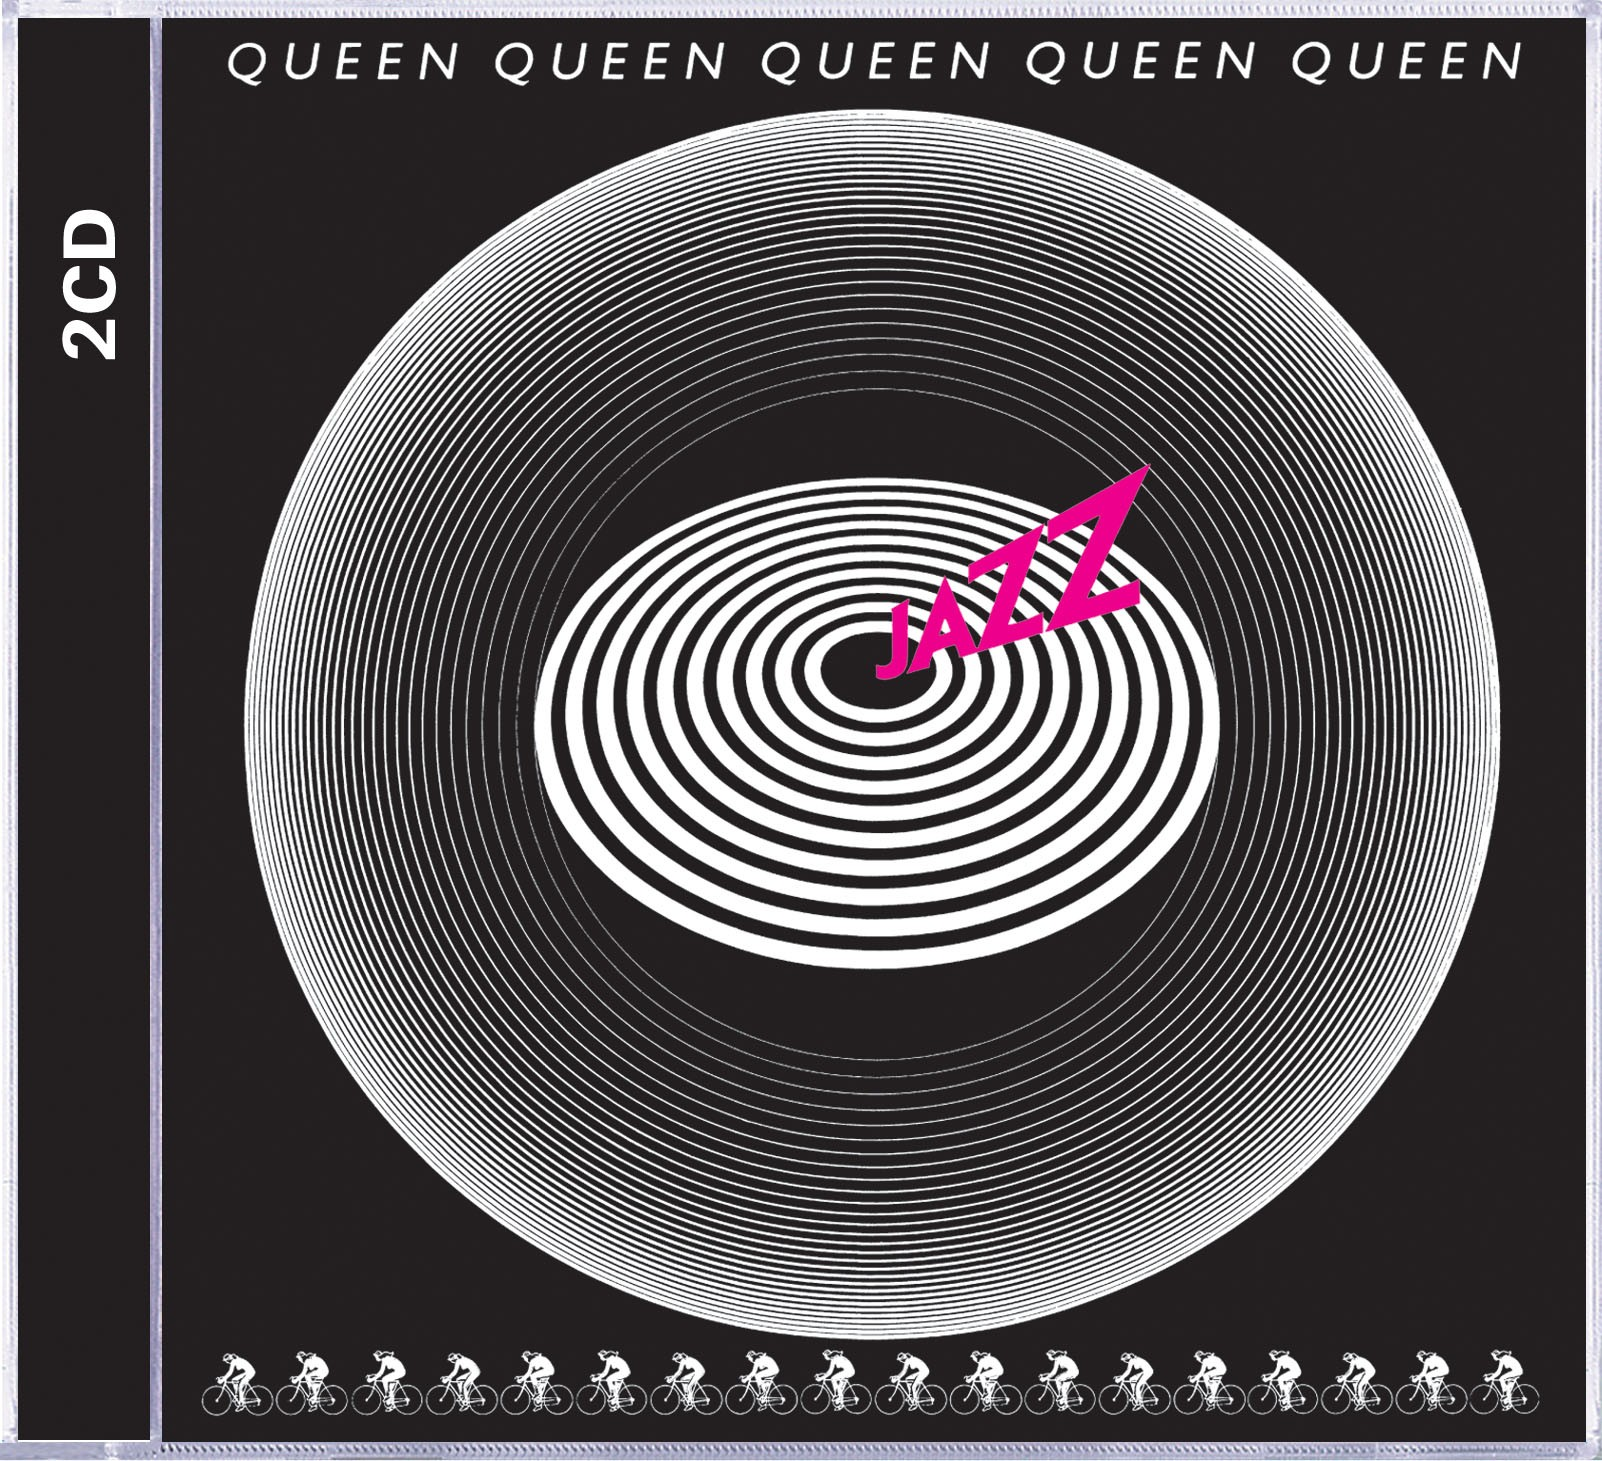 Queen reissues keep on coming | SA Sound